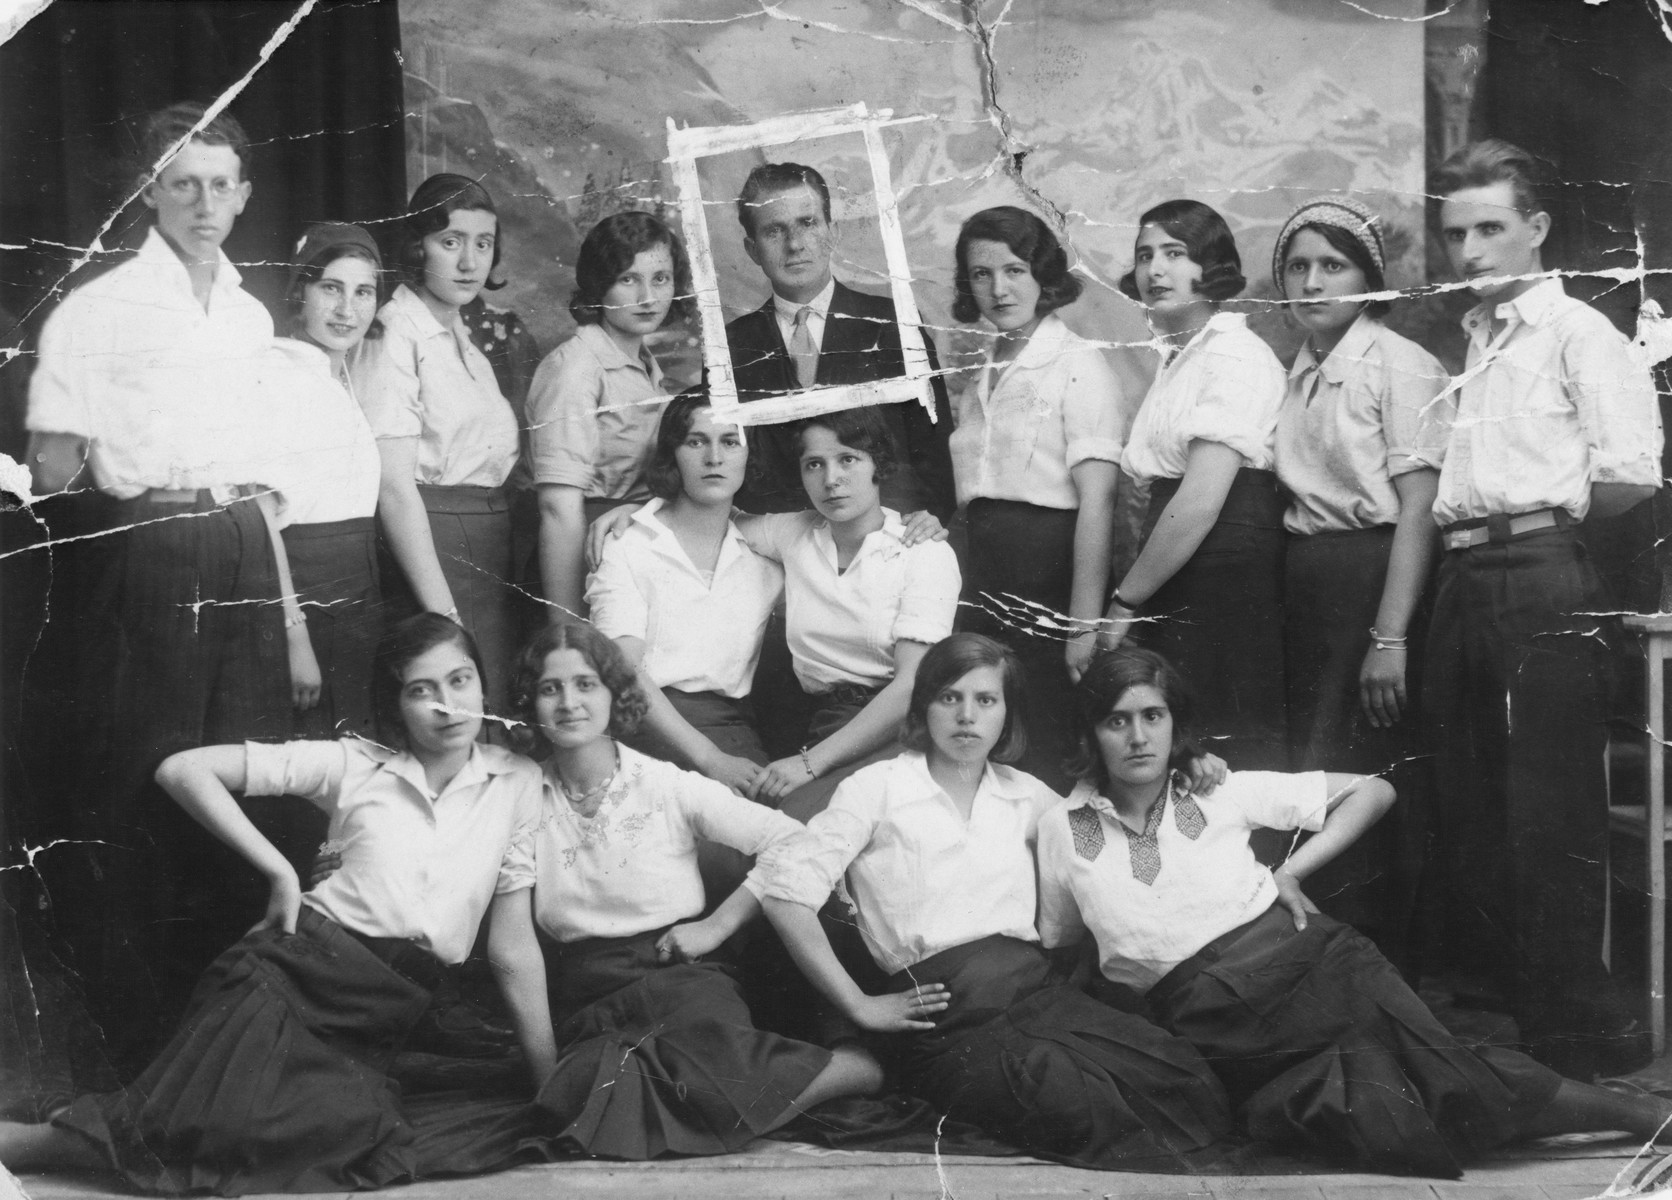 Group of Jewish young women and men wearing white shirts in Macedonia.